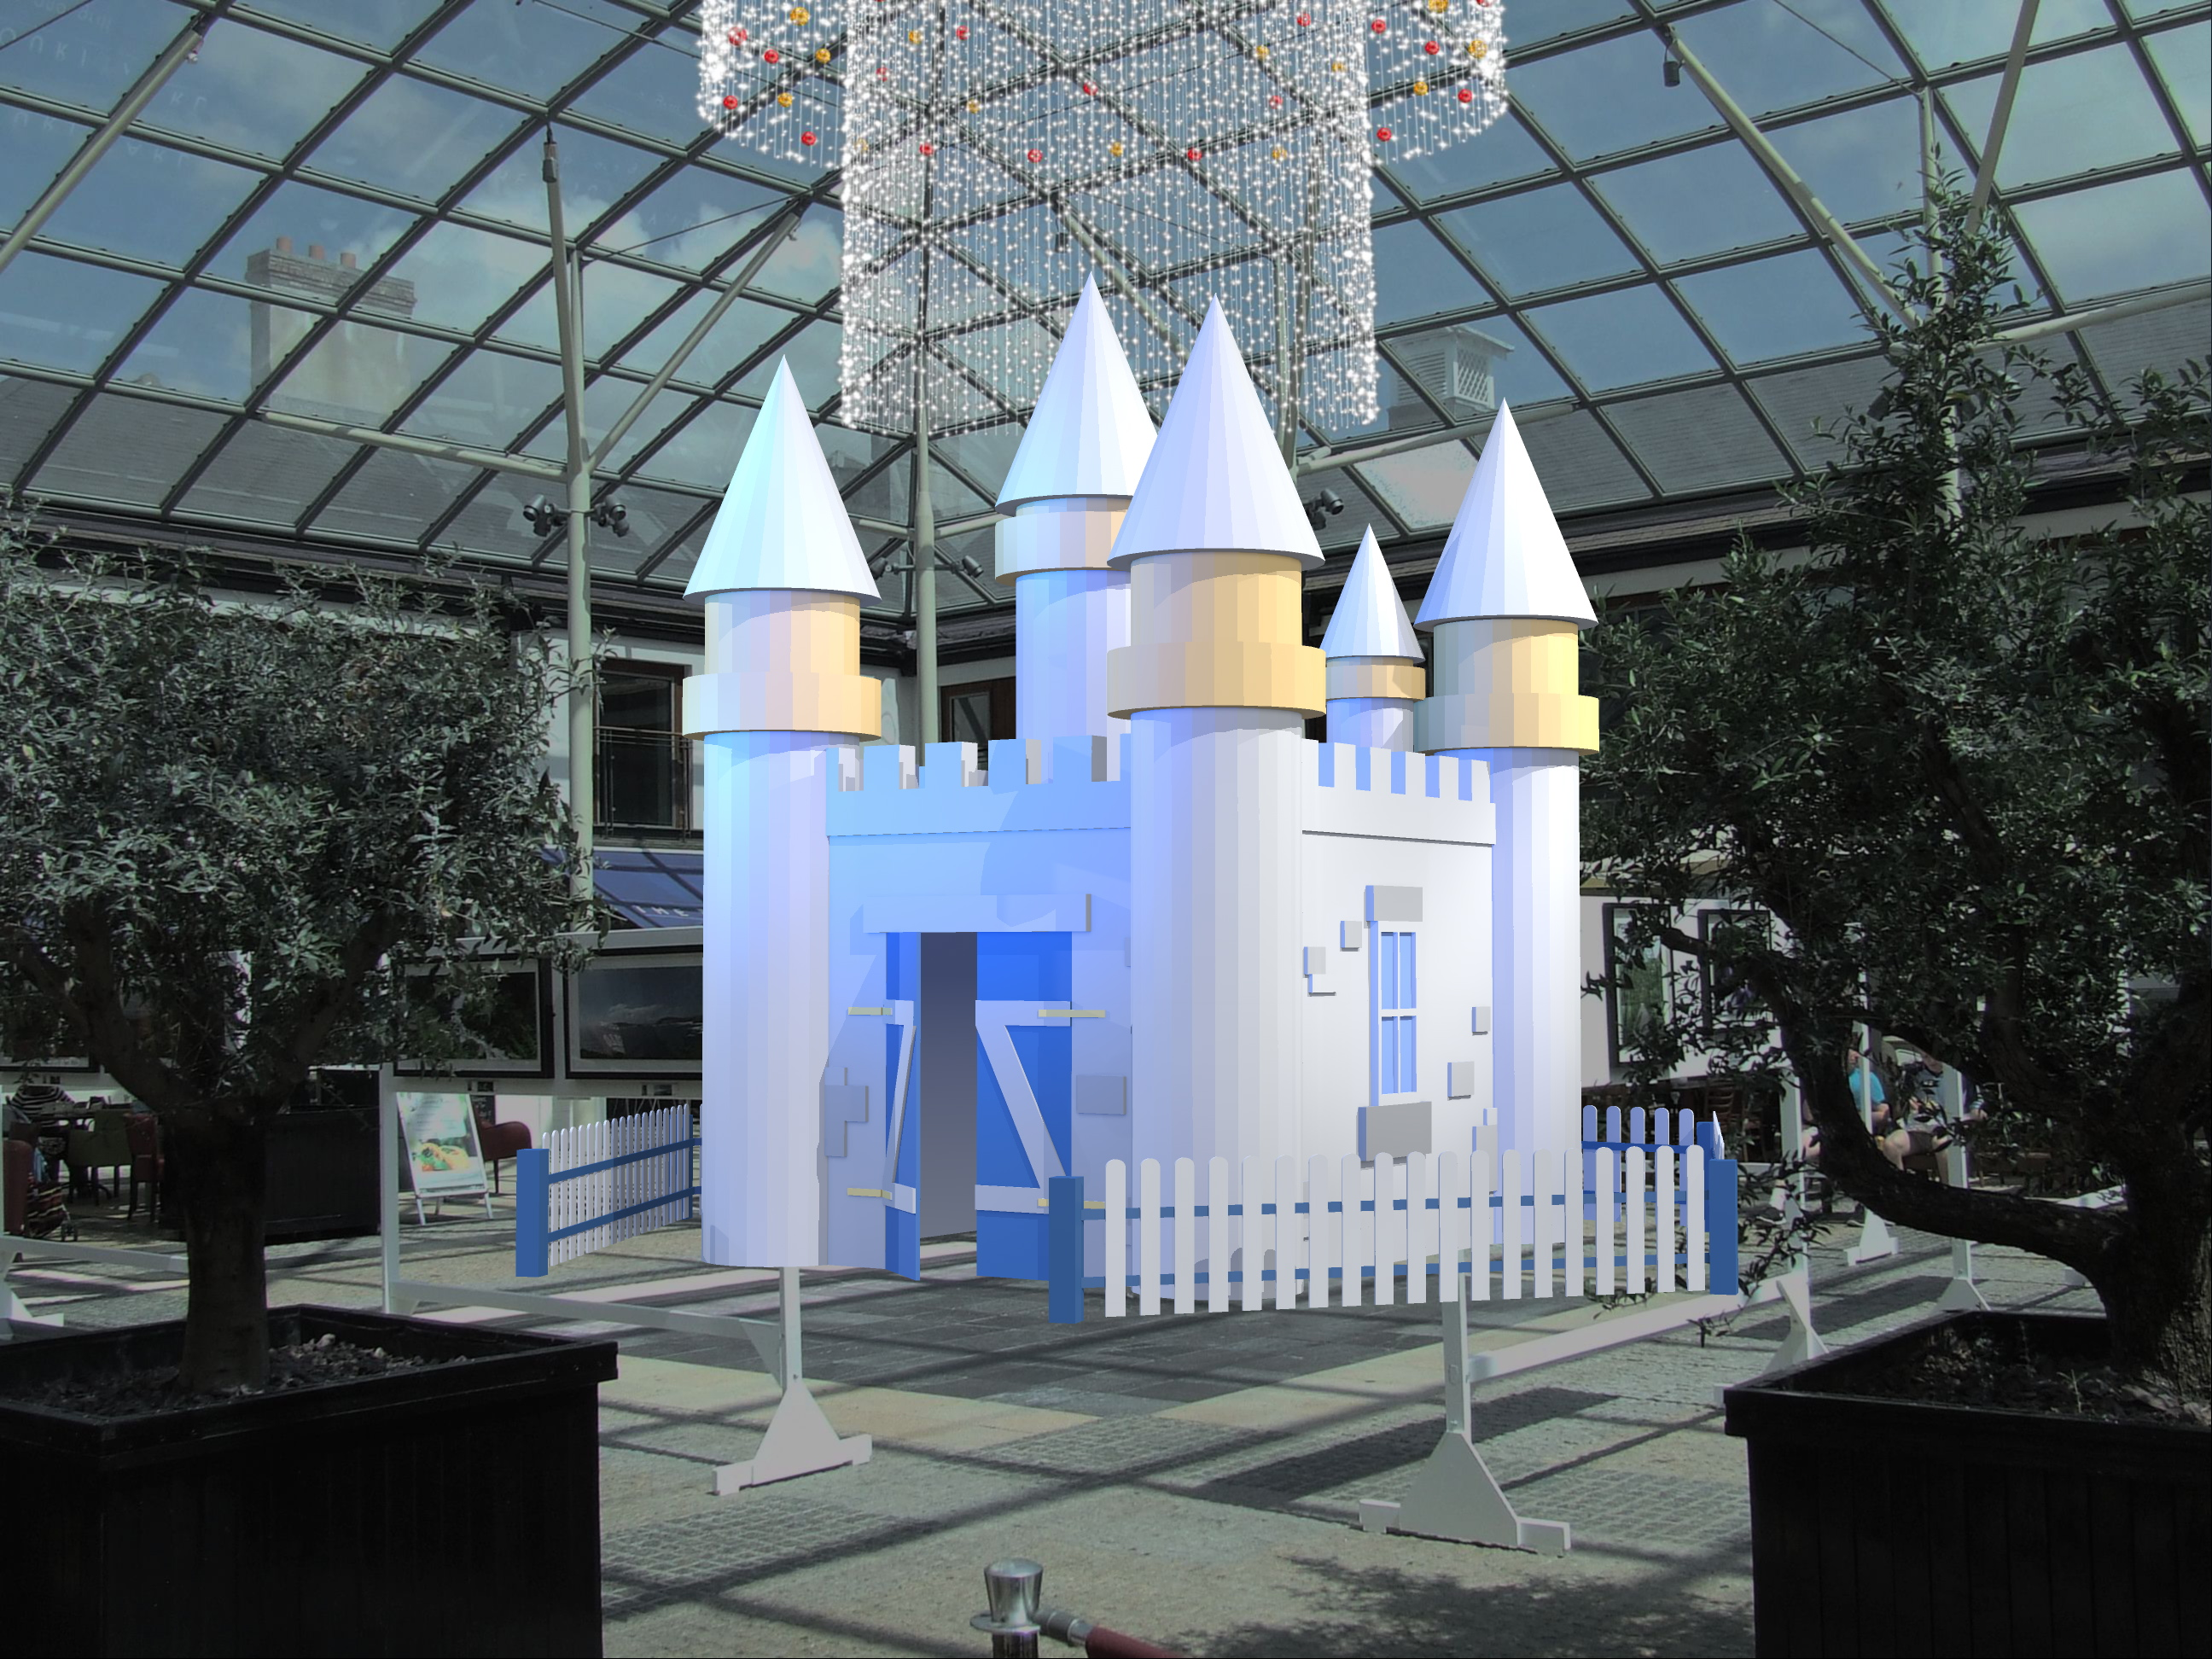 Santa's Castle Christmas Display RL-CS-008